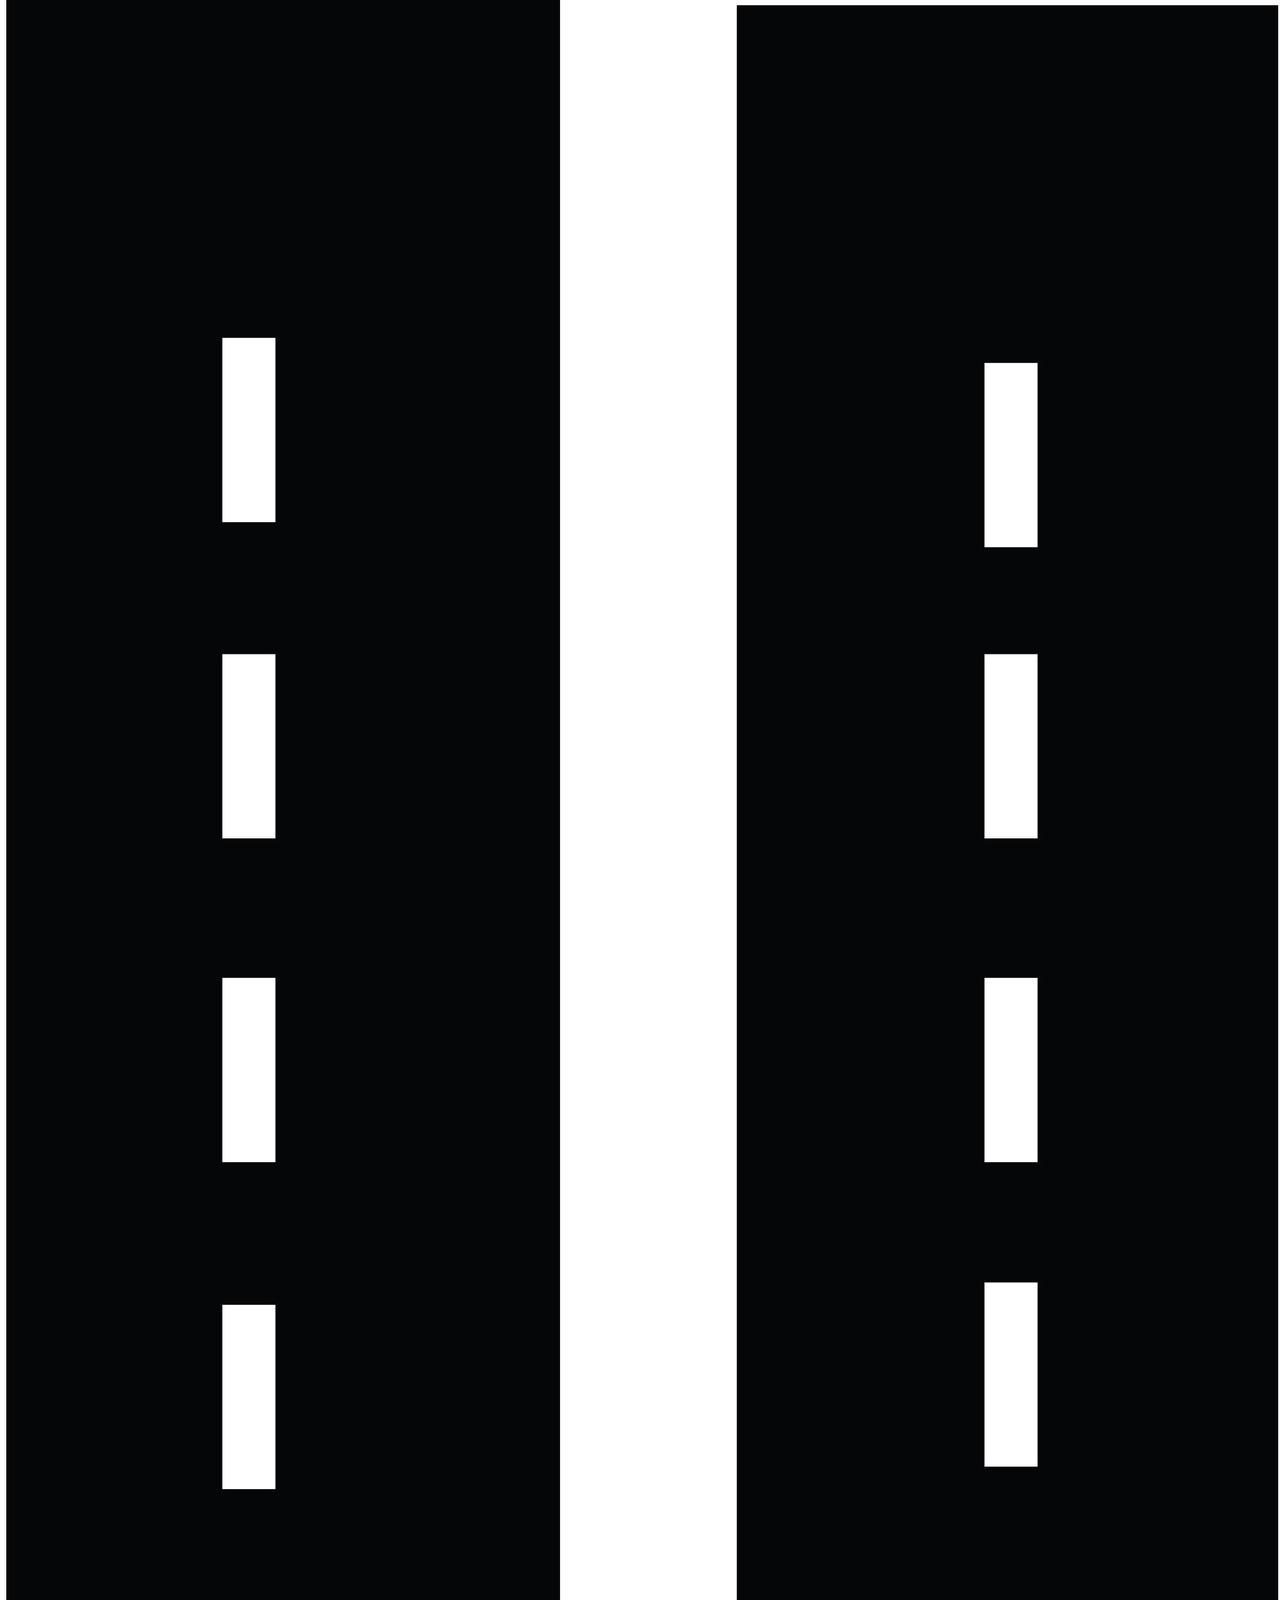 Road Clipart Black And White : clipart, black, white, Straight, Cliparts,, Download, Clipart, Library